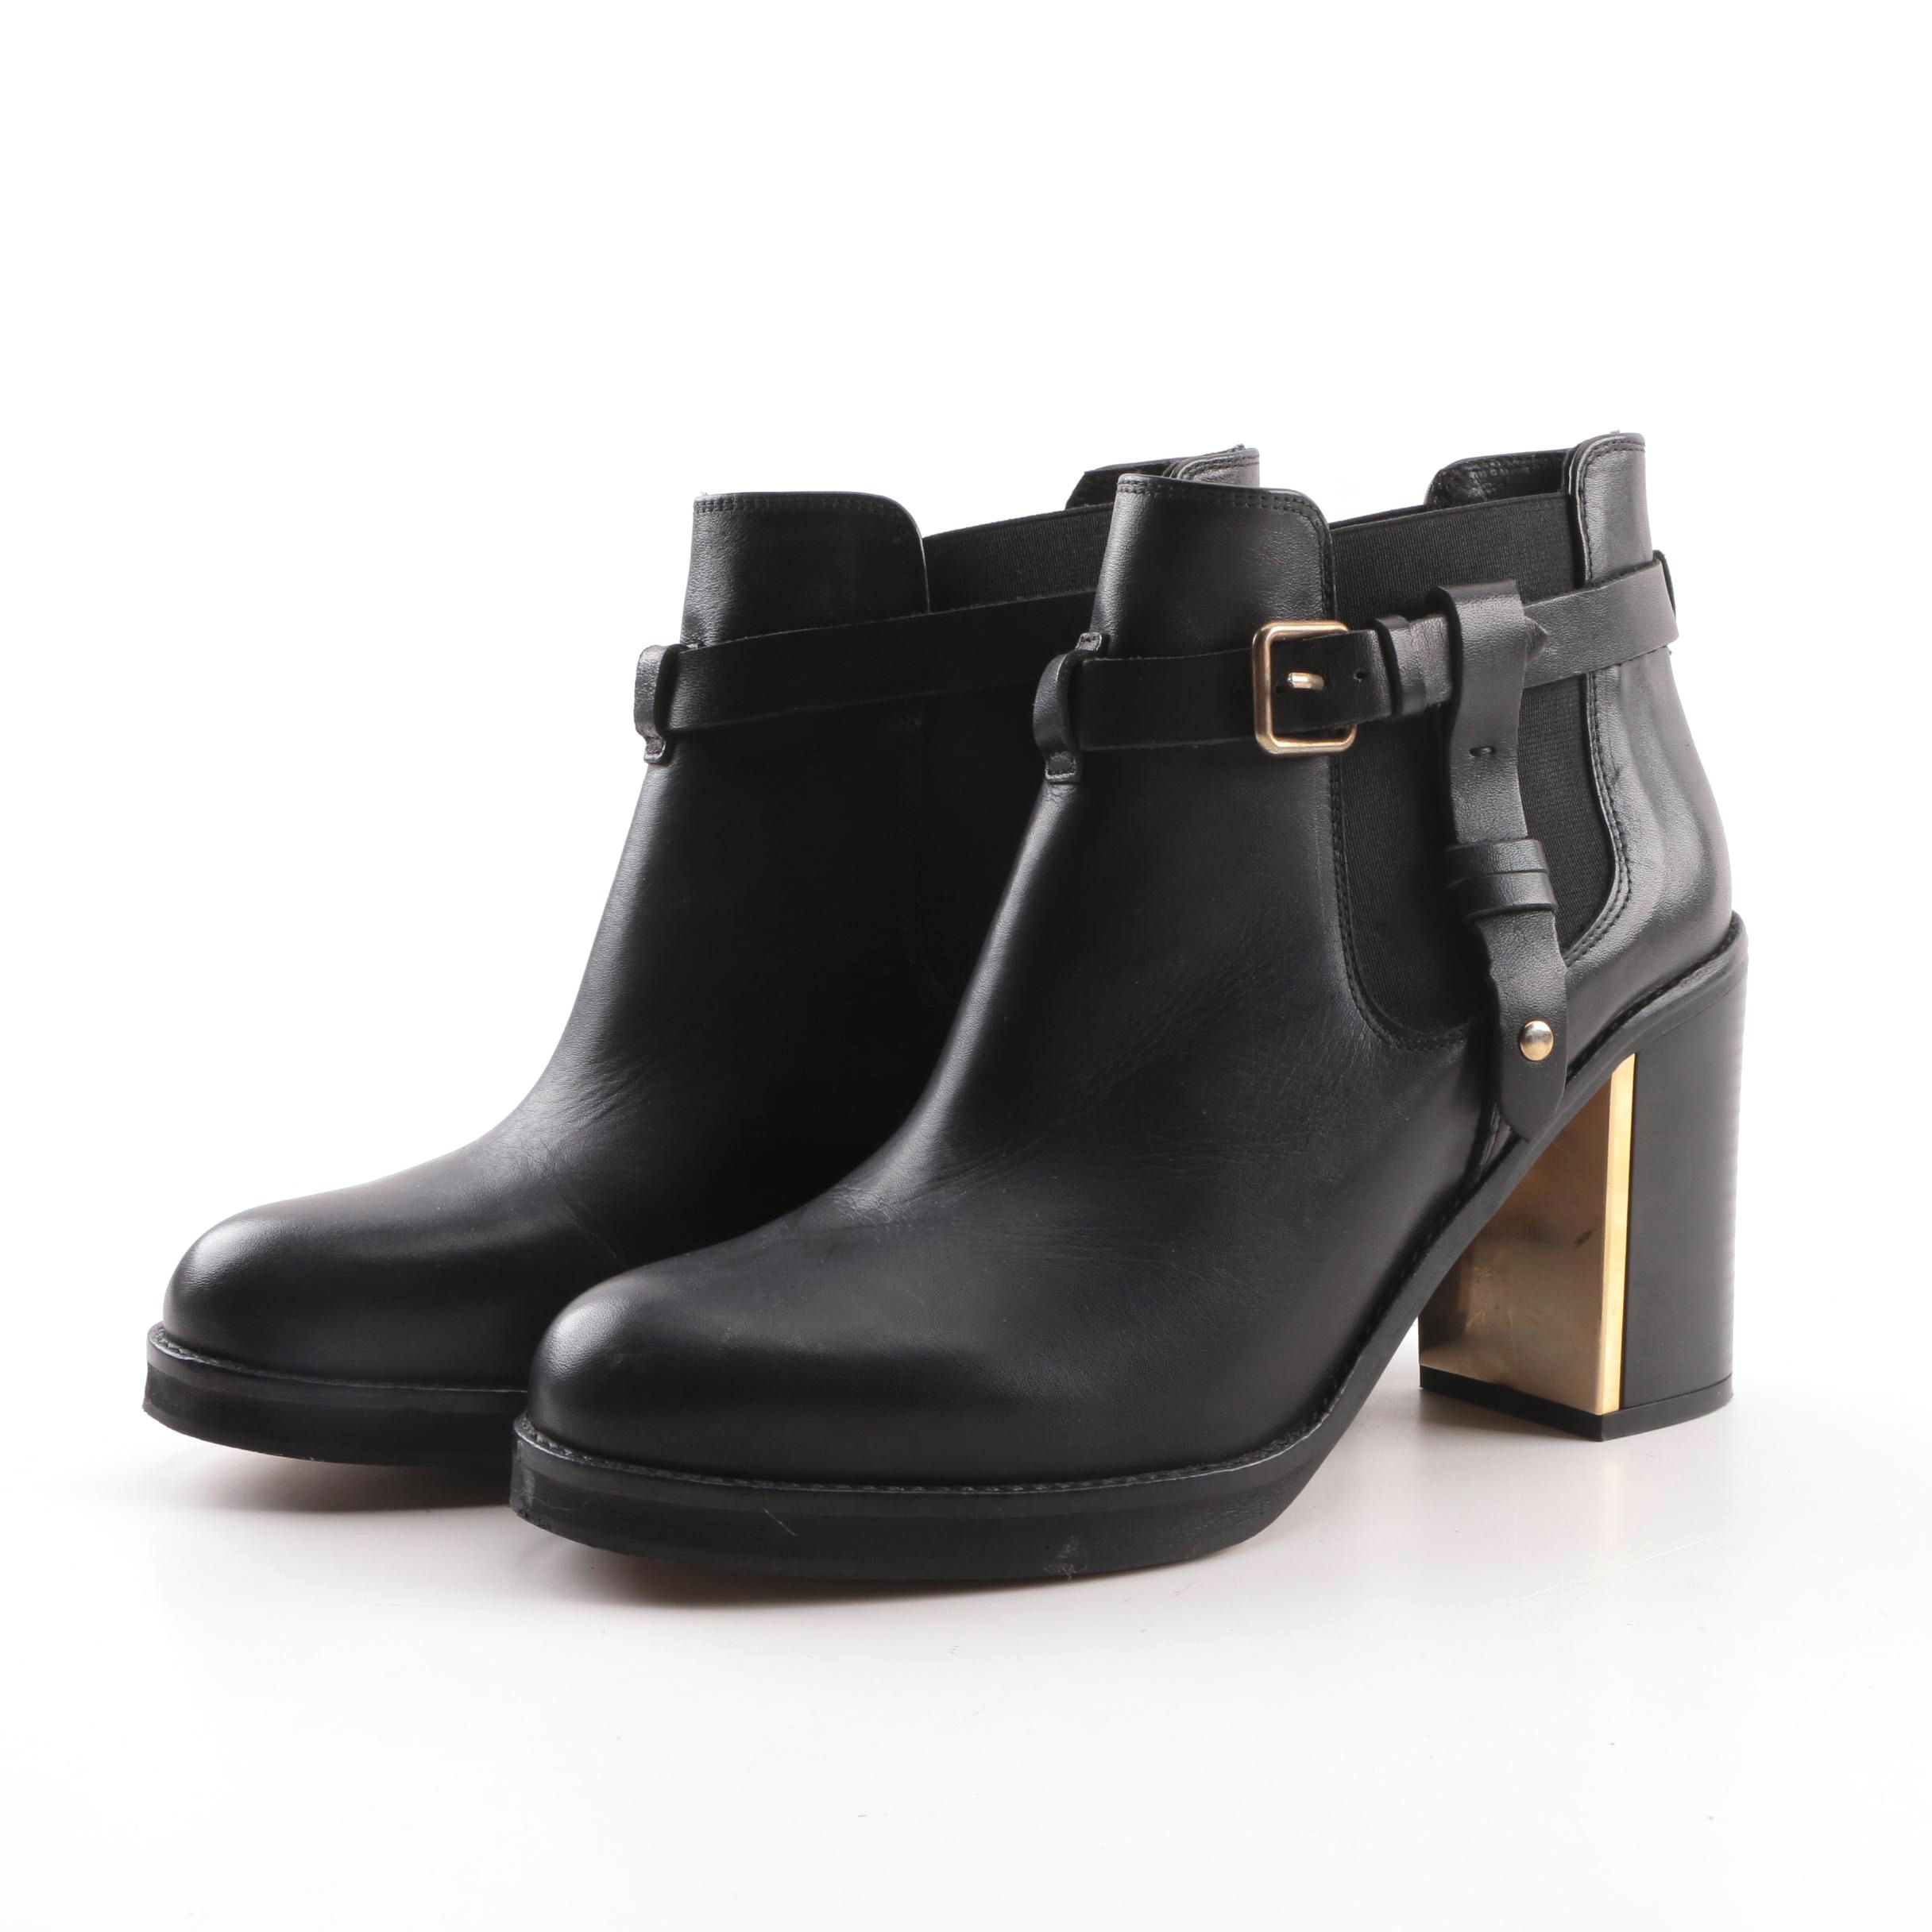 Women's Topshop Black Leather Ankle Boots